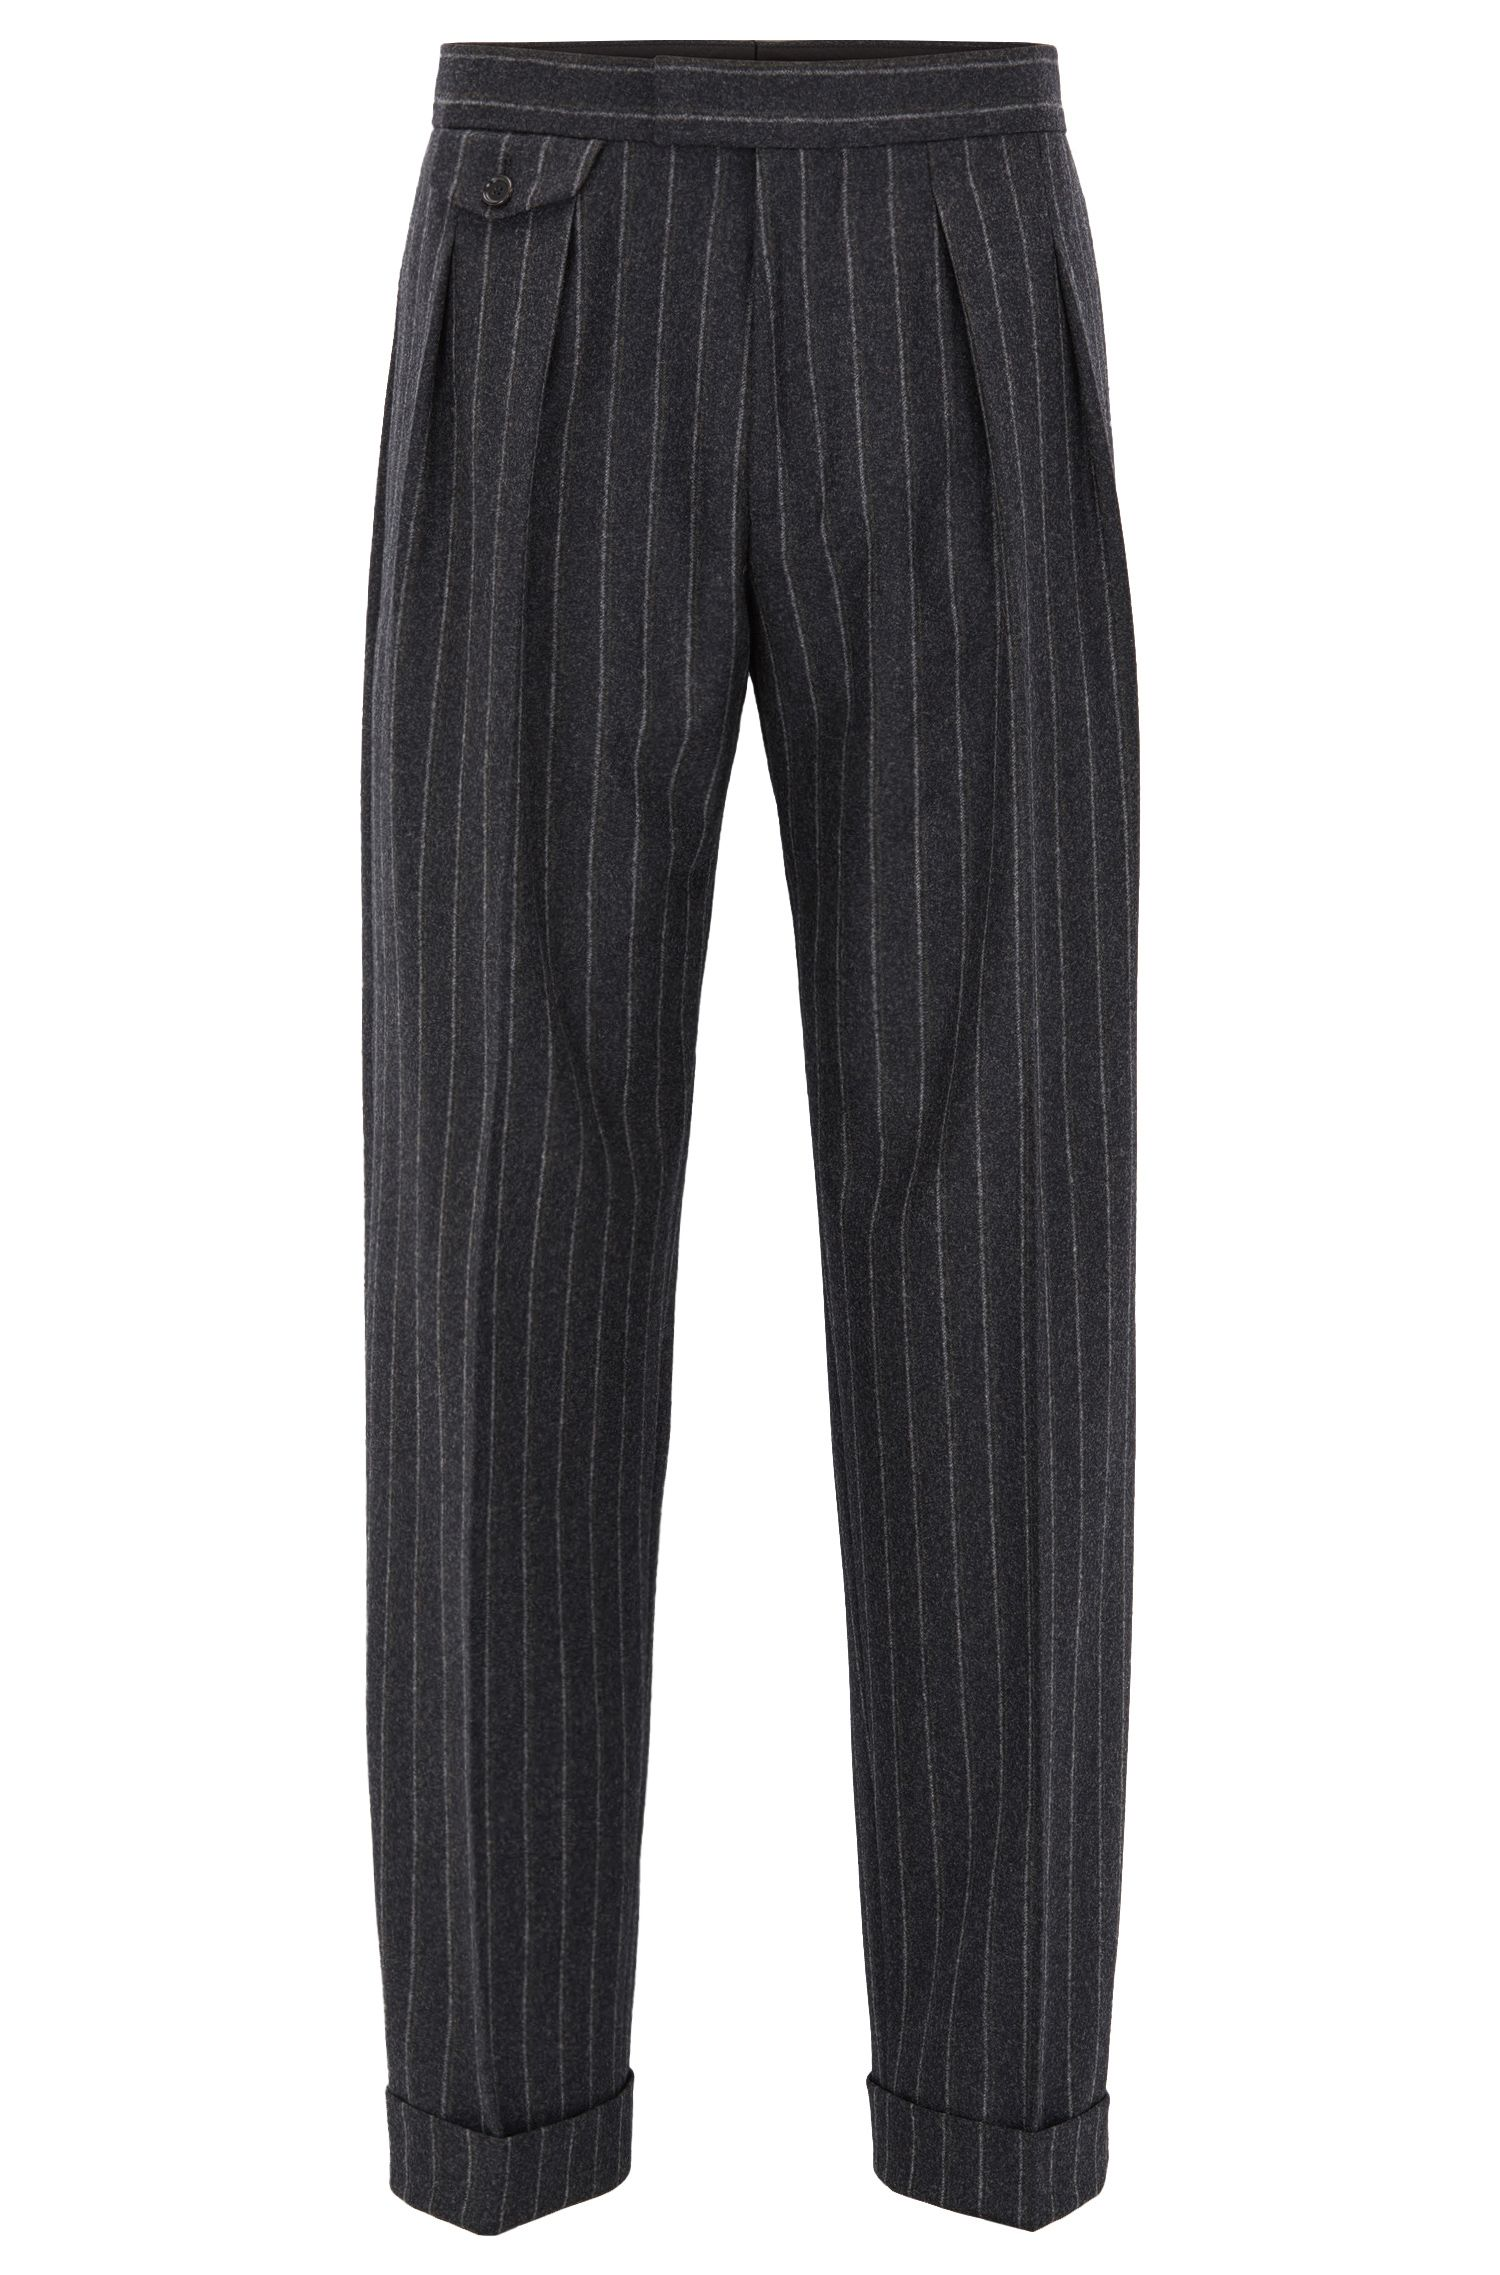 Relaxed-fit pleated chalk-stripe trousers in virgin wool